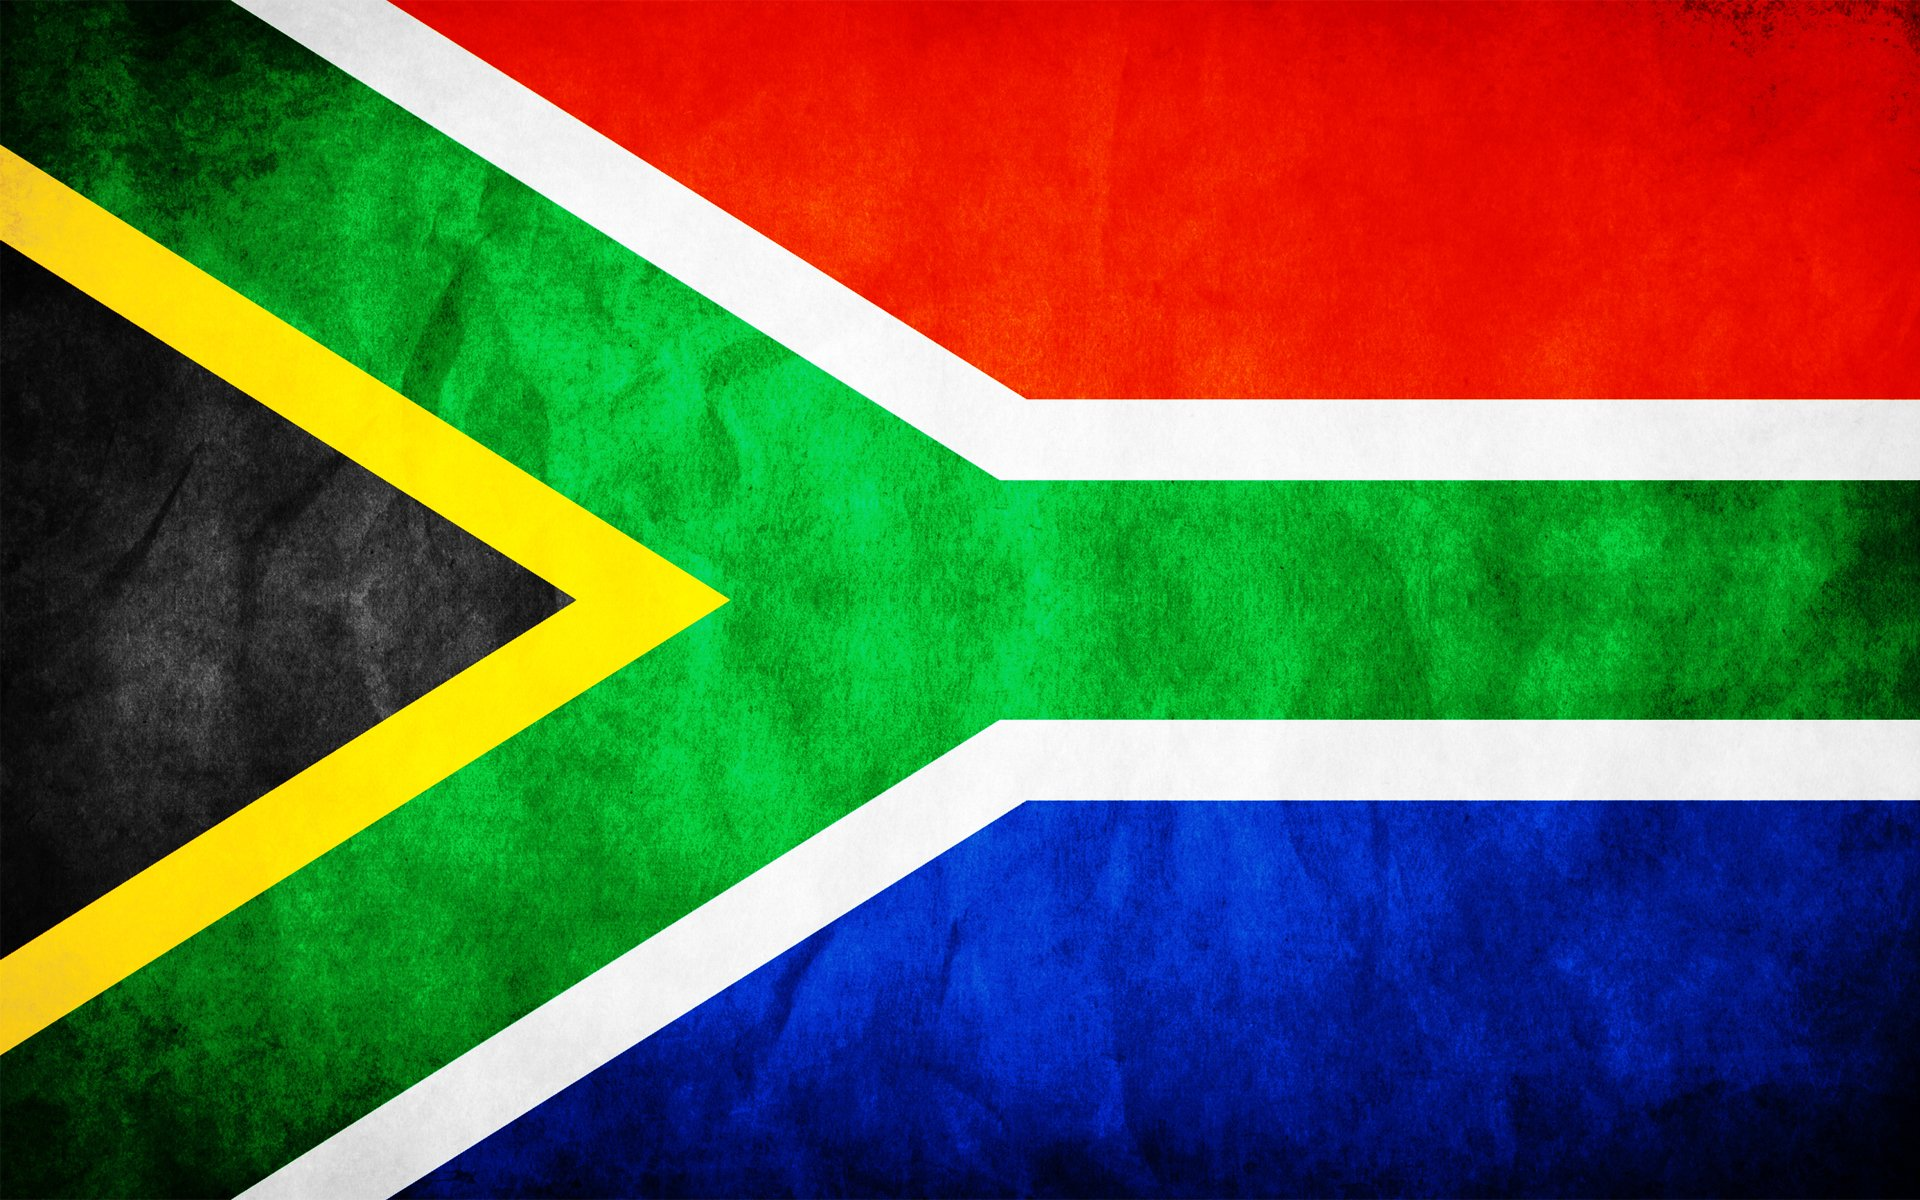 Flag Of South Africa Papel De Parede Hd  Plano De Fundo -3385